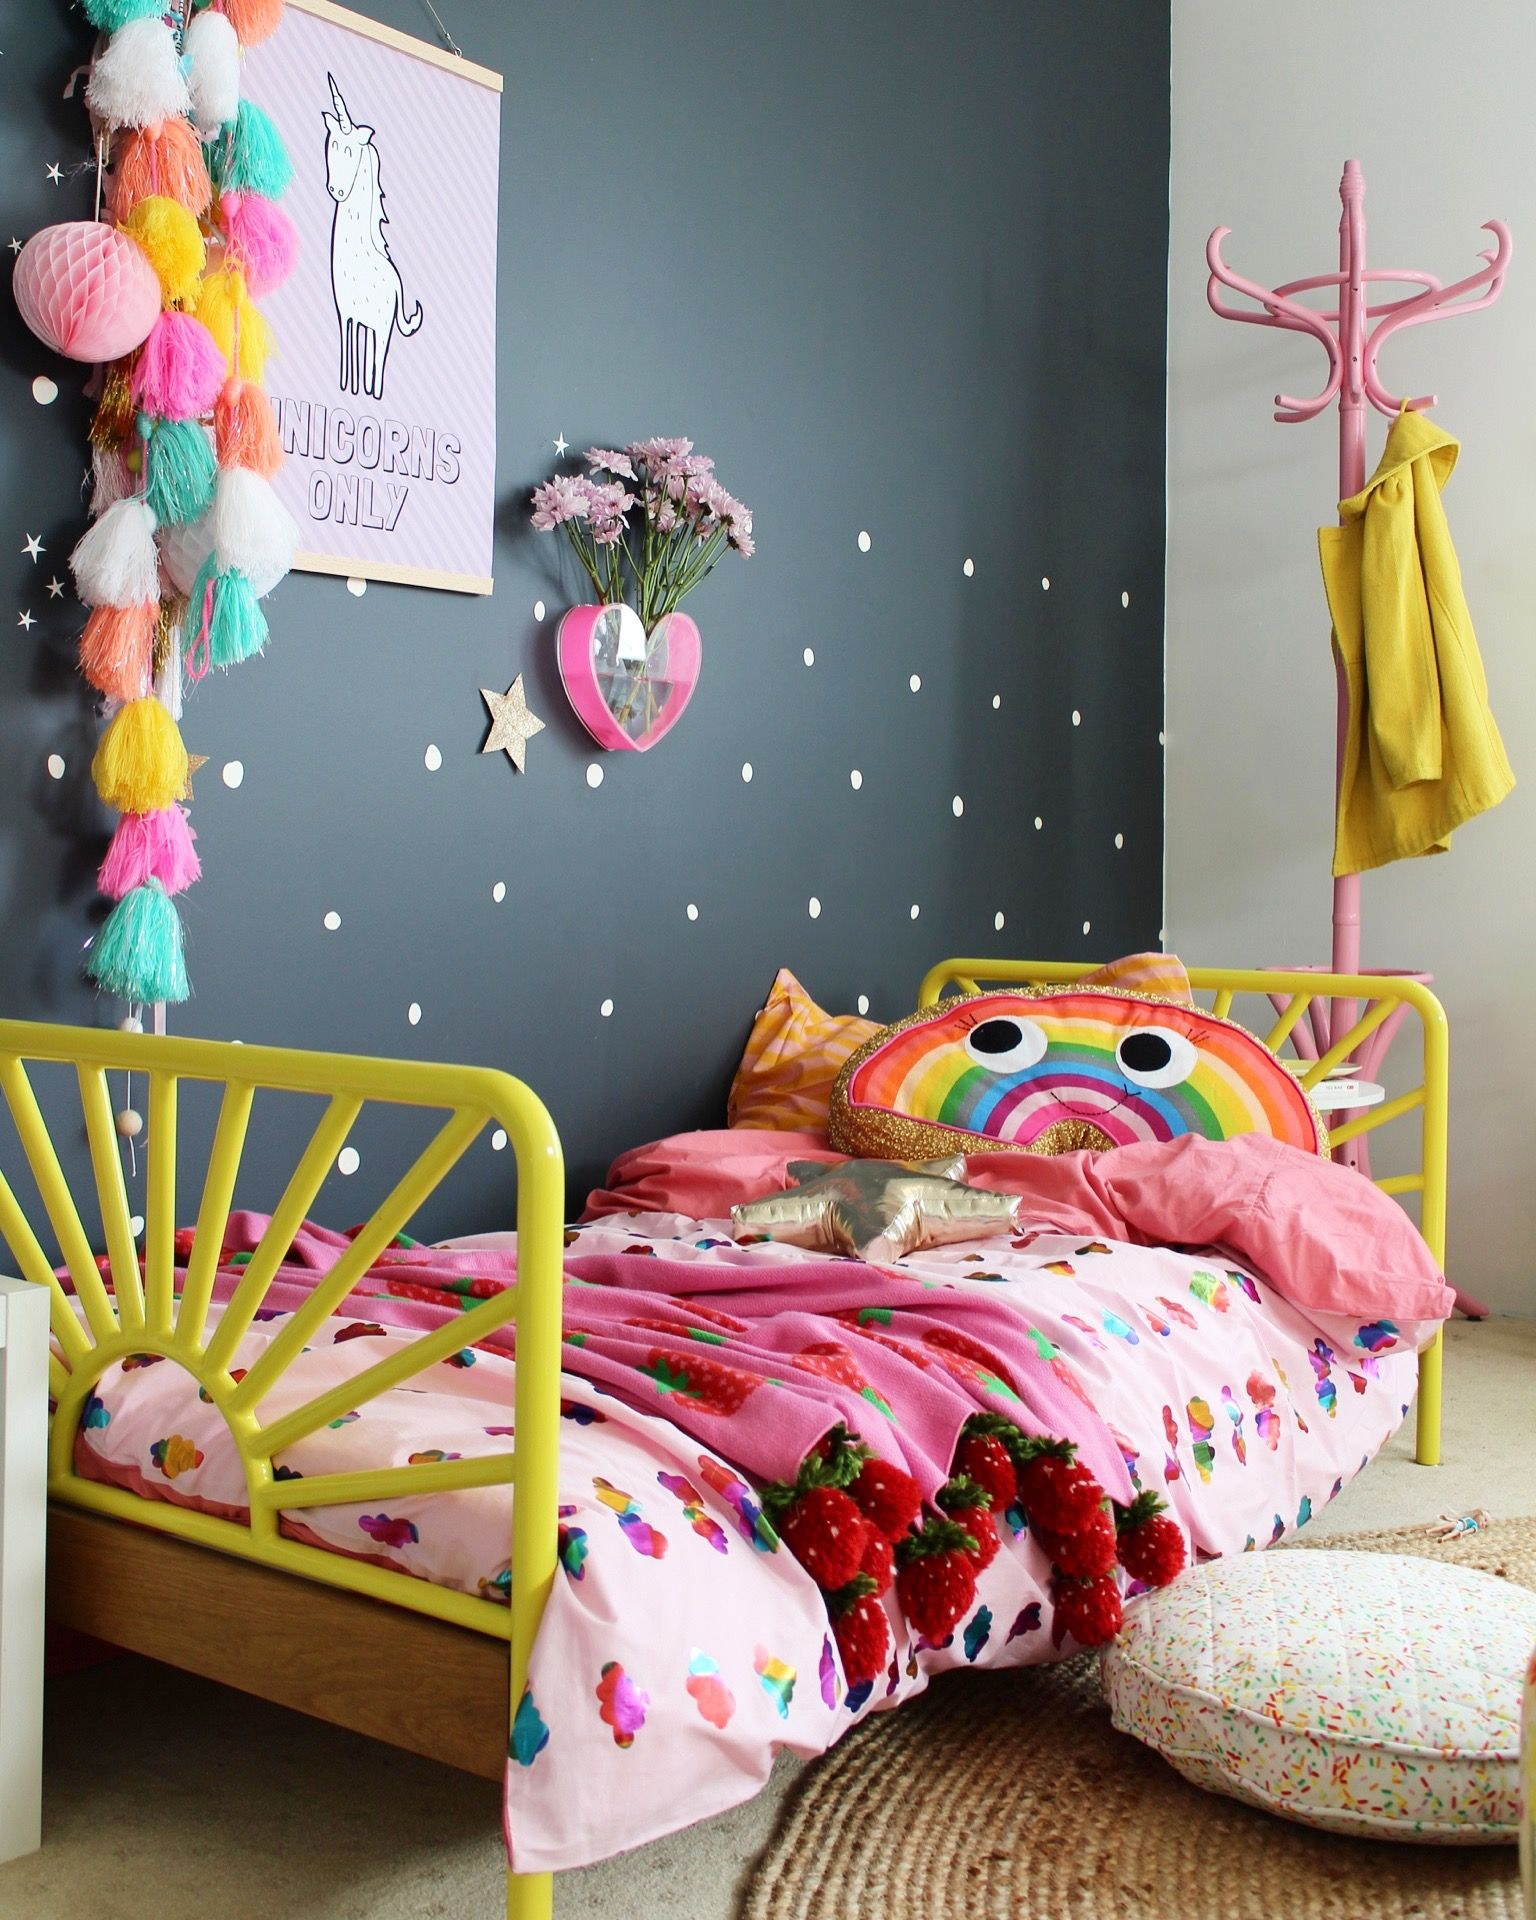 Toddler Room Decor Ideas cloudy with a chance of rainbows | toddler rooms, bedrooms and room